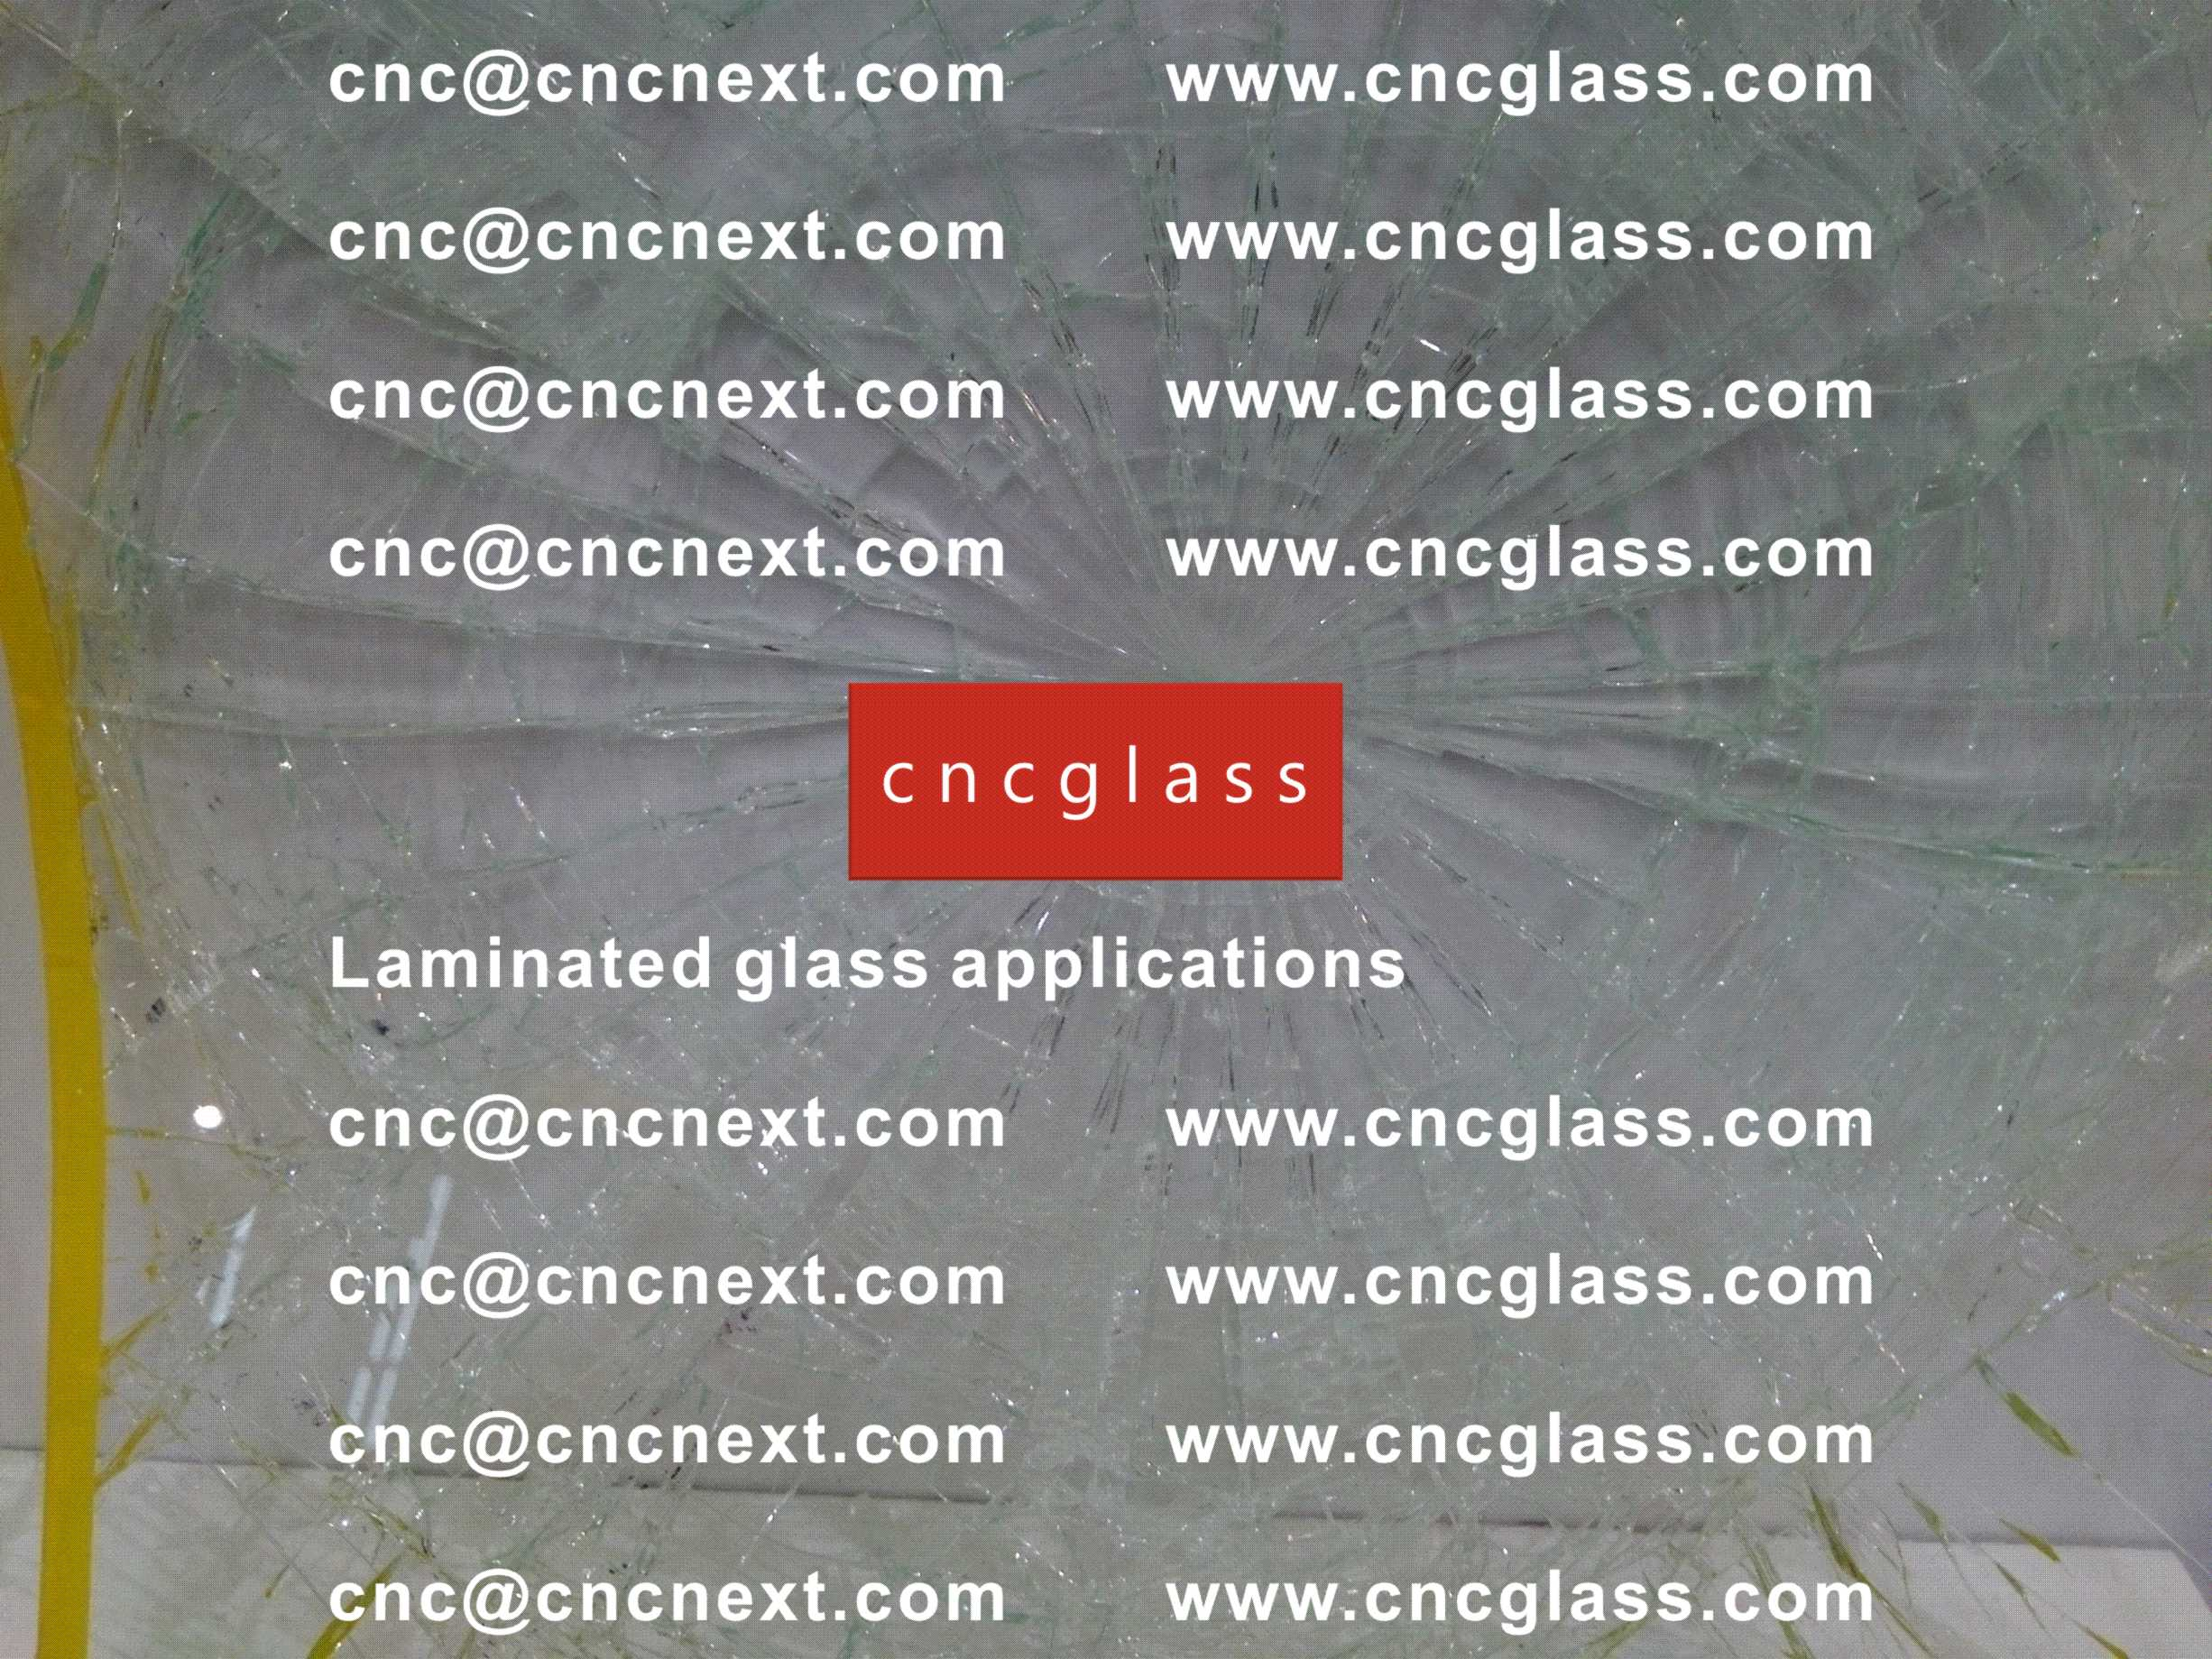 017 EVAFORCE LAMINATED GLASS